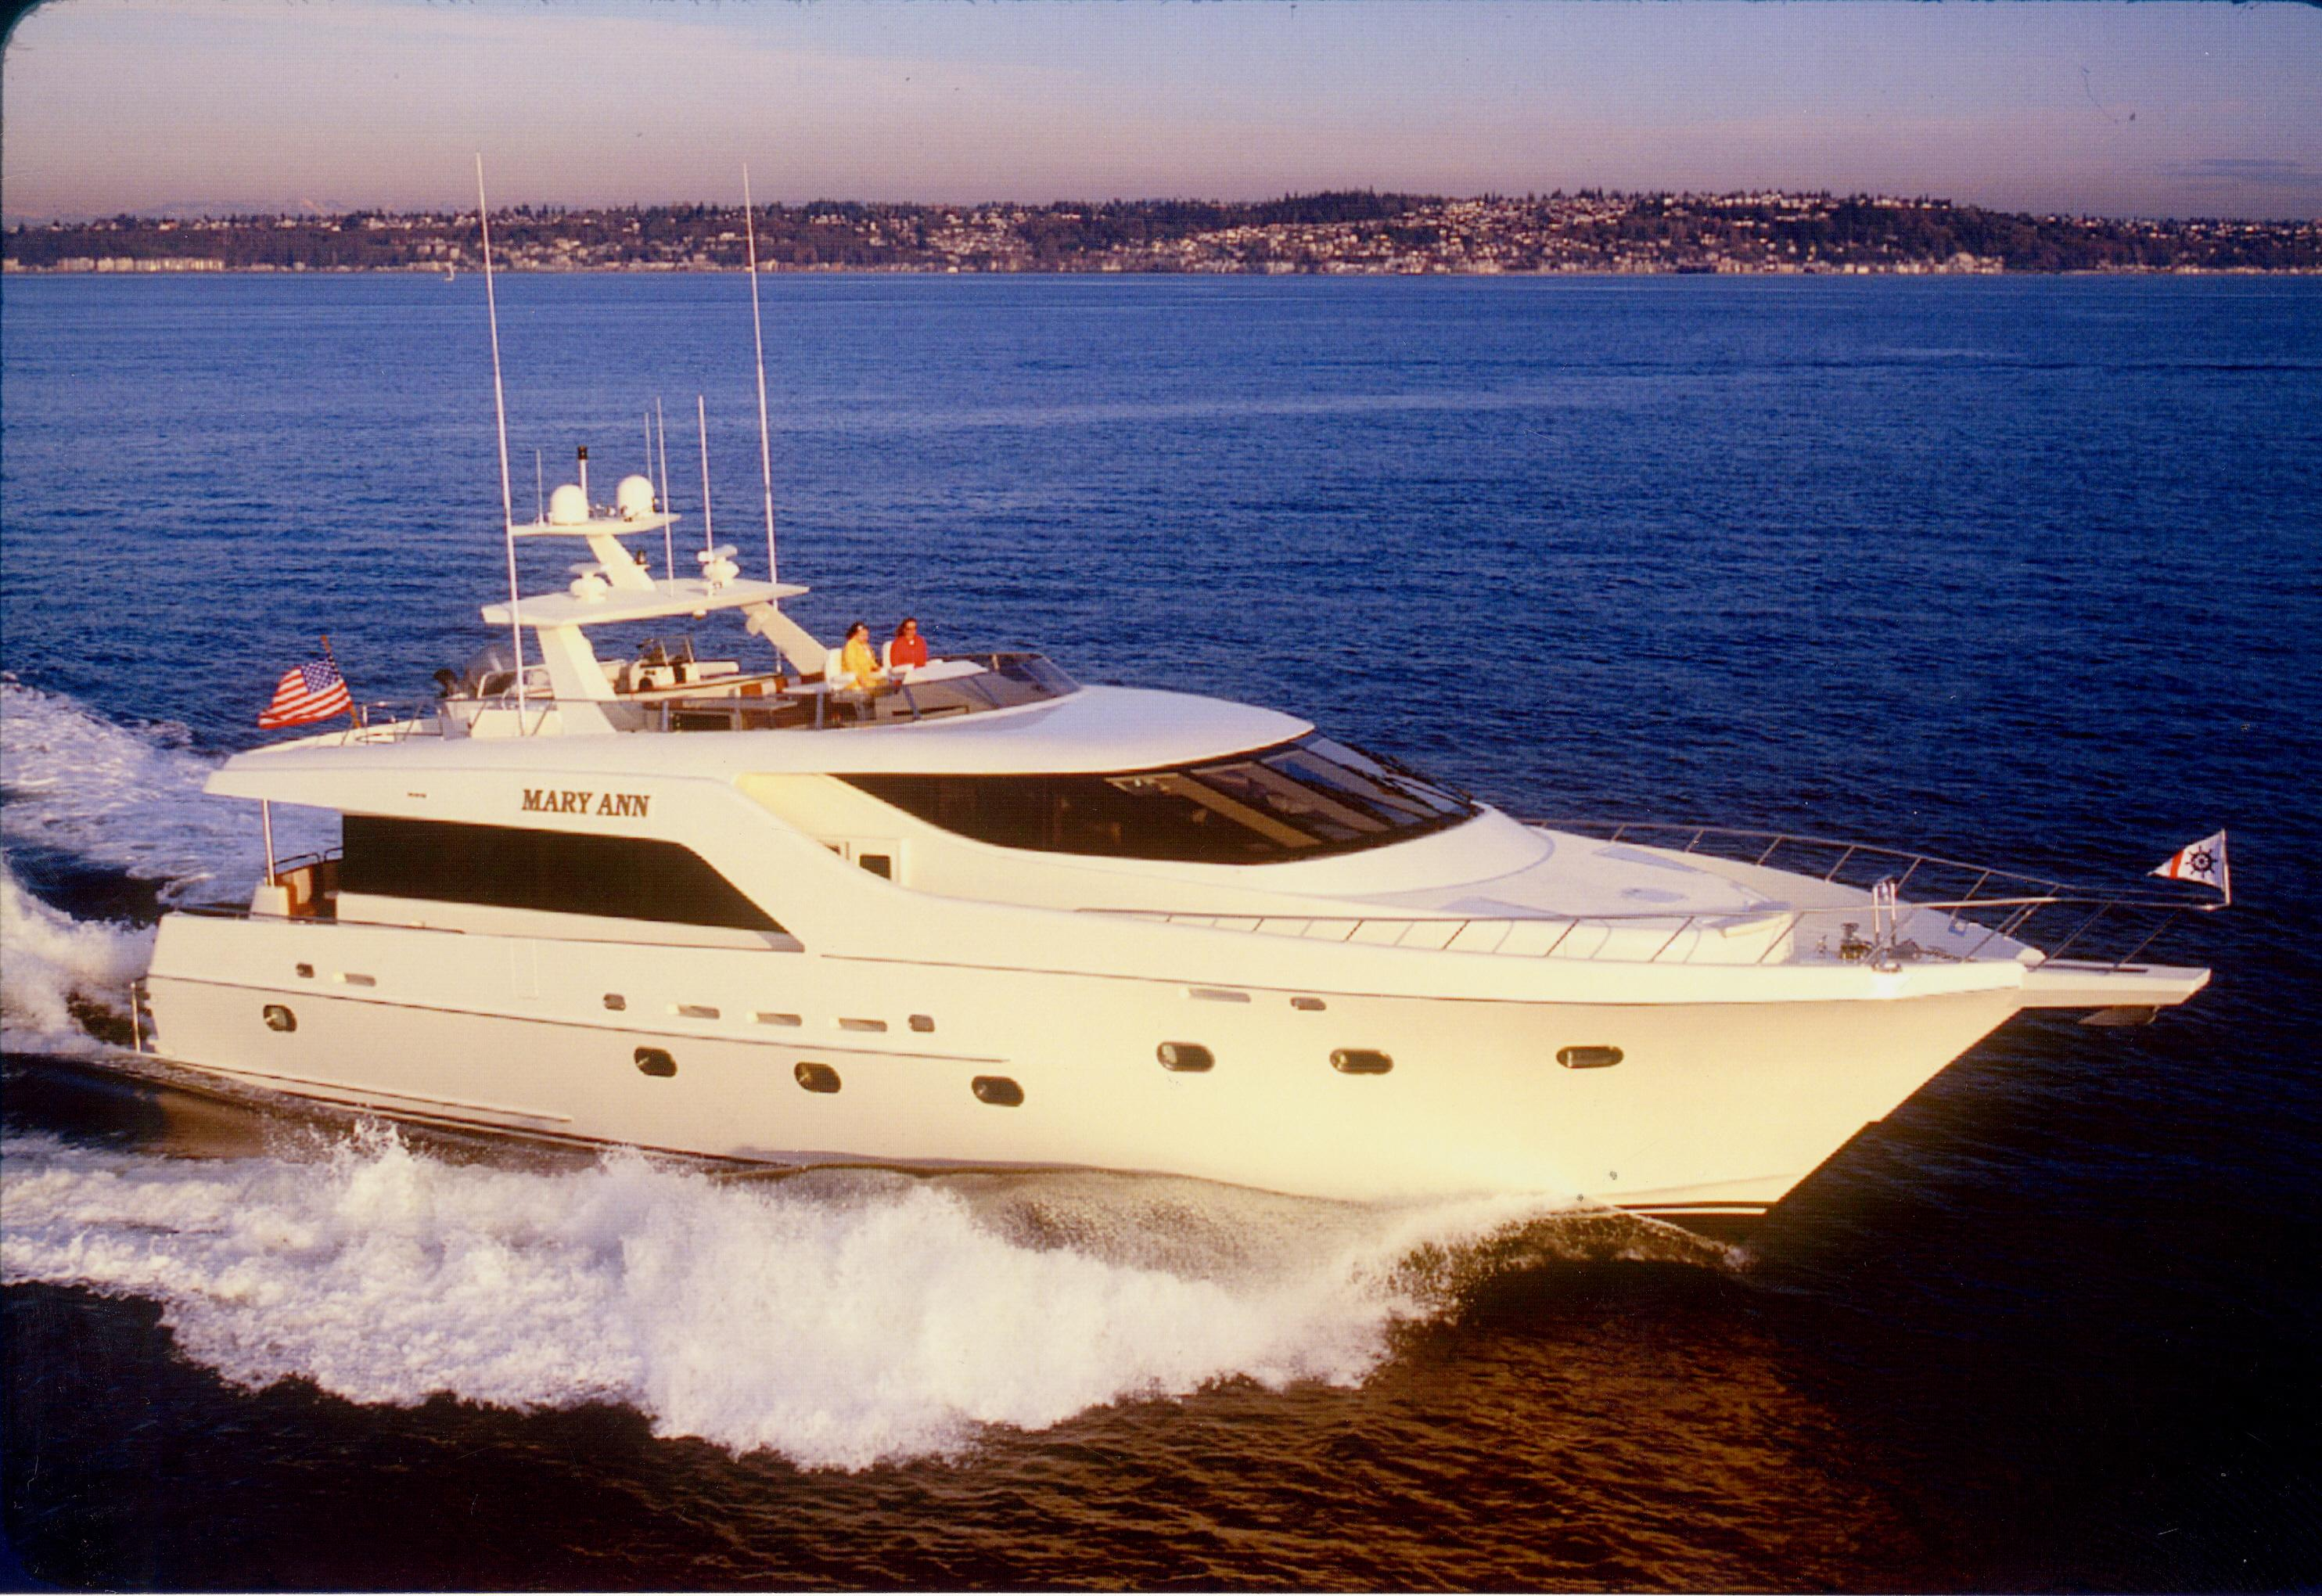 Tivoli Yacht For Sale 90 Foot Boats For Sale In Wa Boat Listings